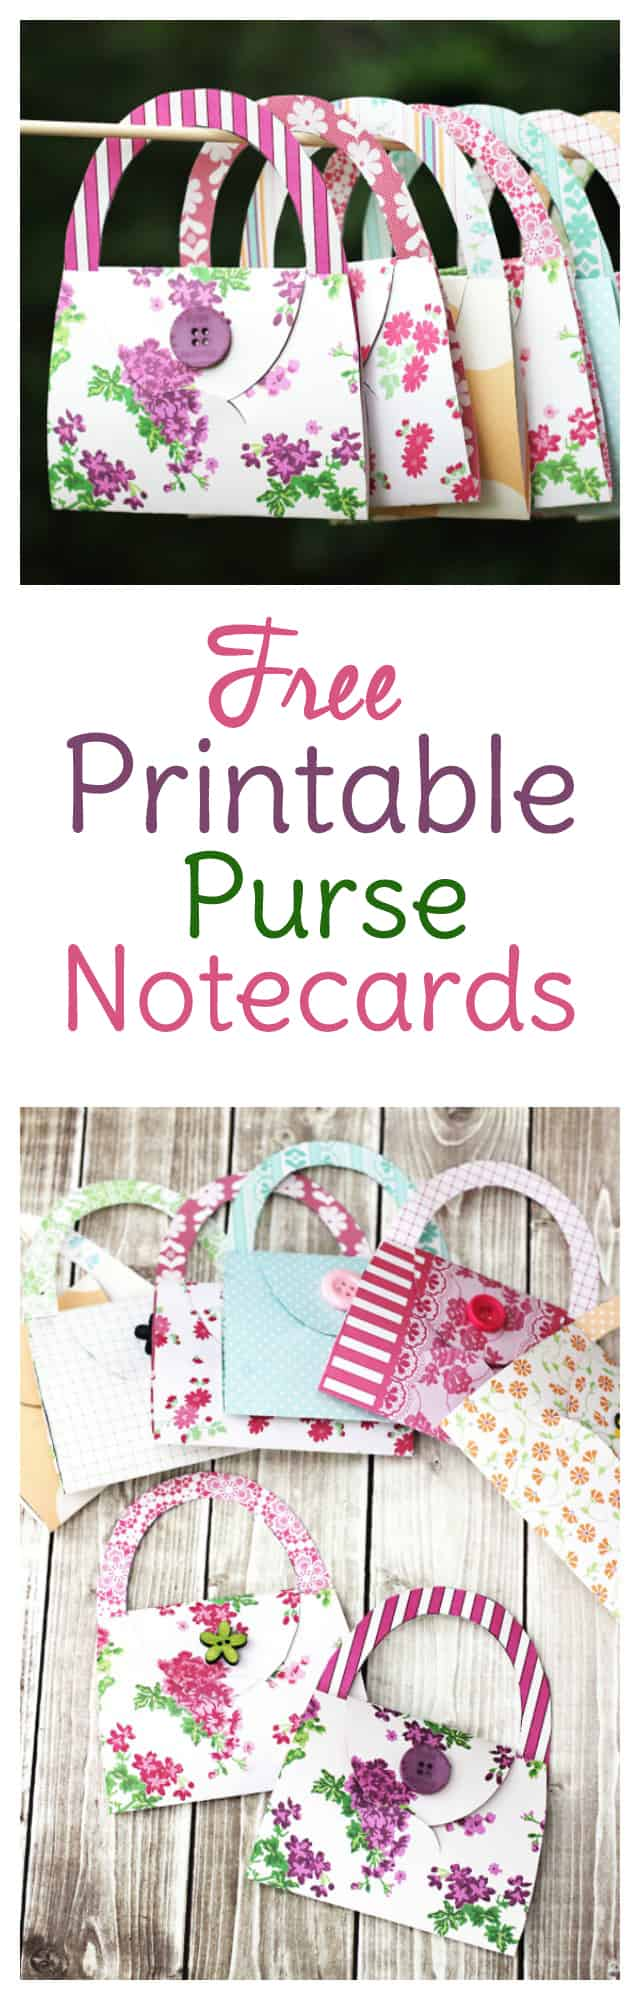 Need fresh card making ideas? Try this free card making template to make these adorable cards that look like purses!